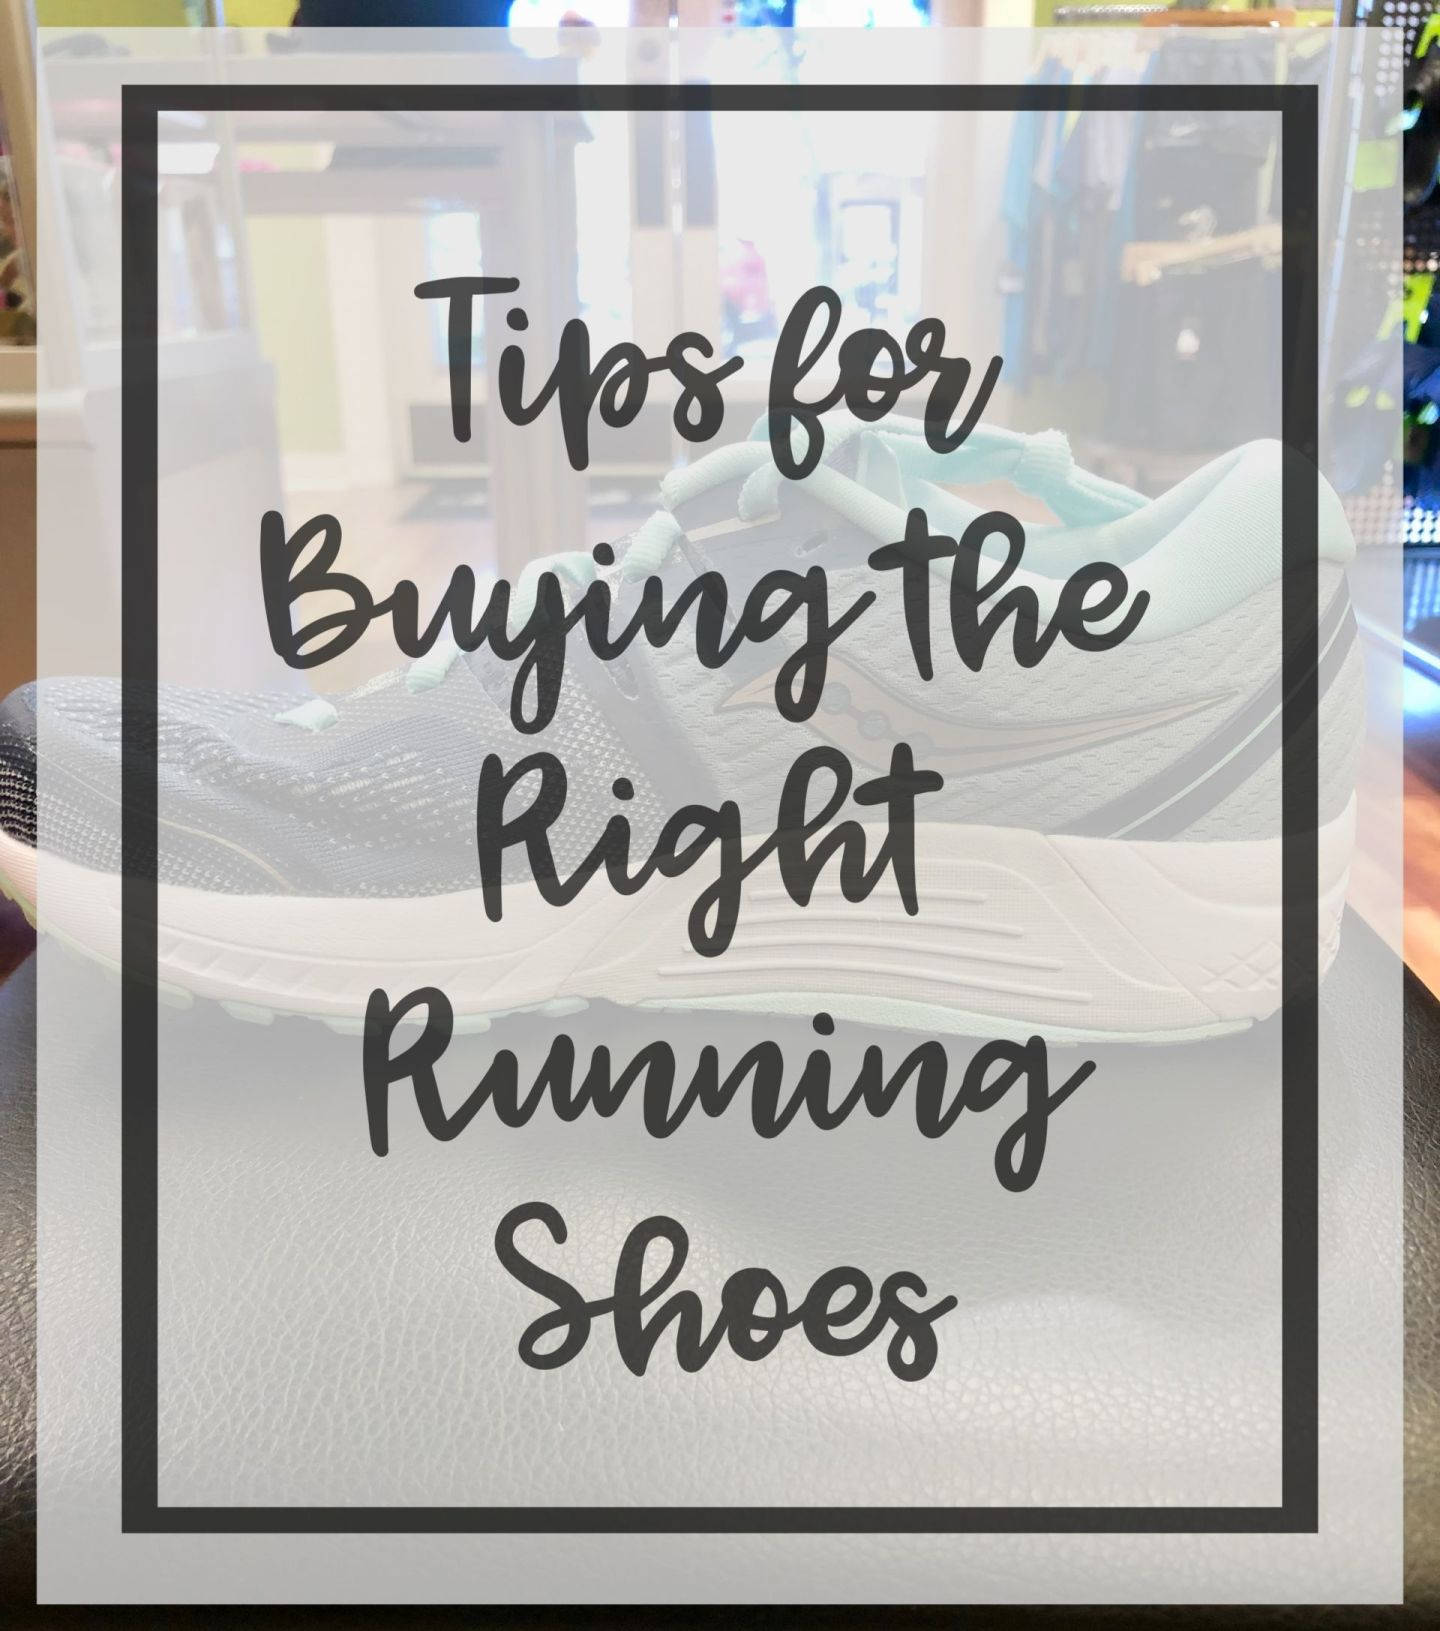 Tips for Buying the Right Running Shoes